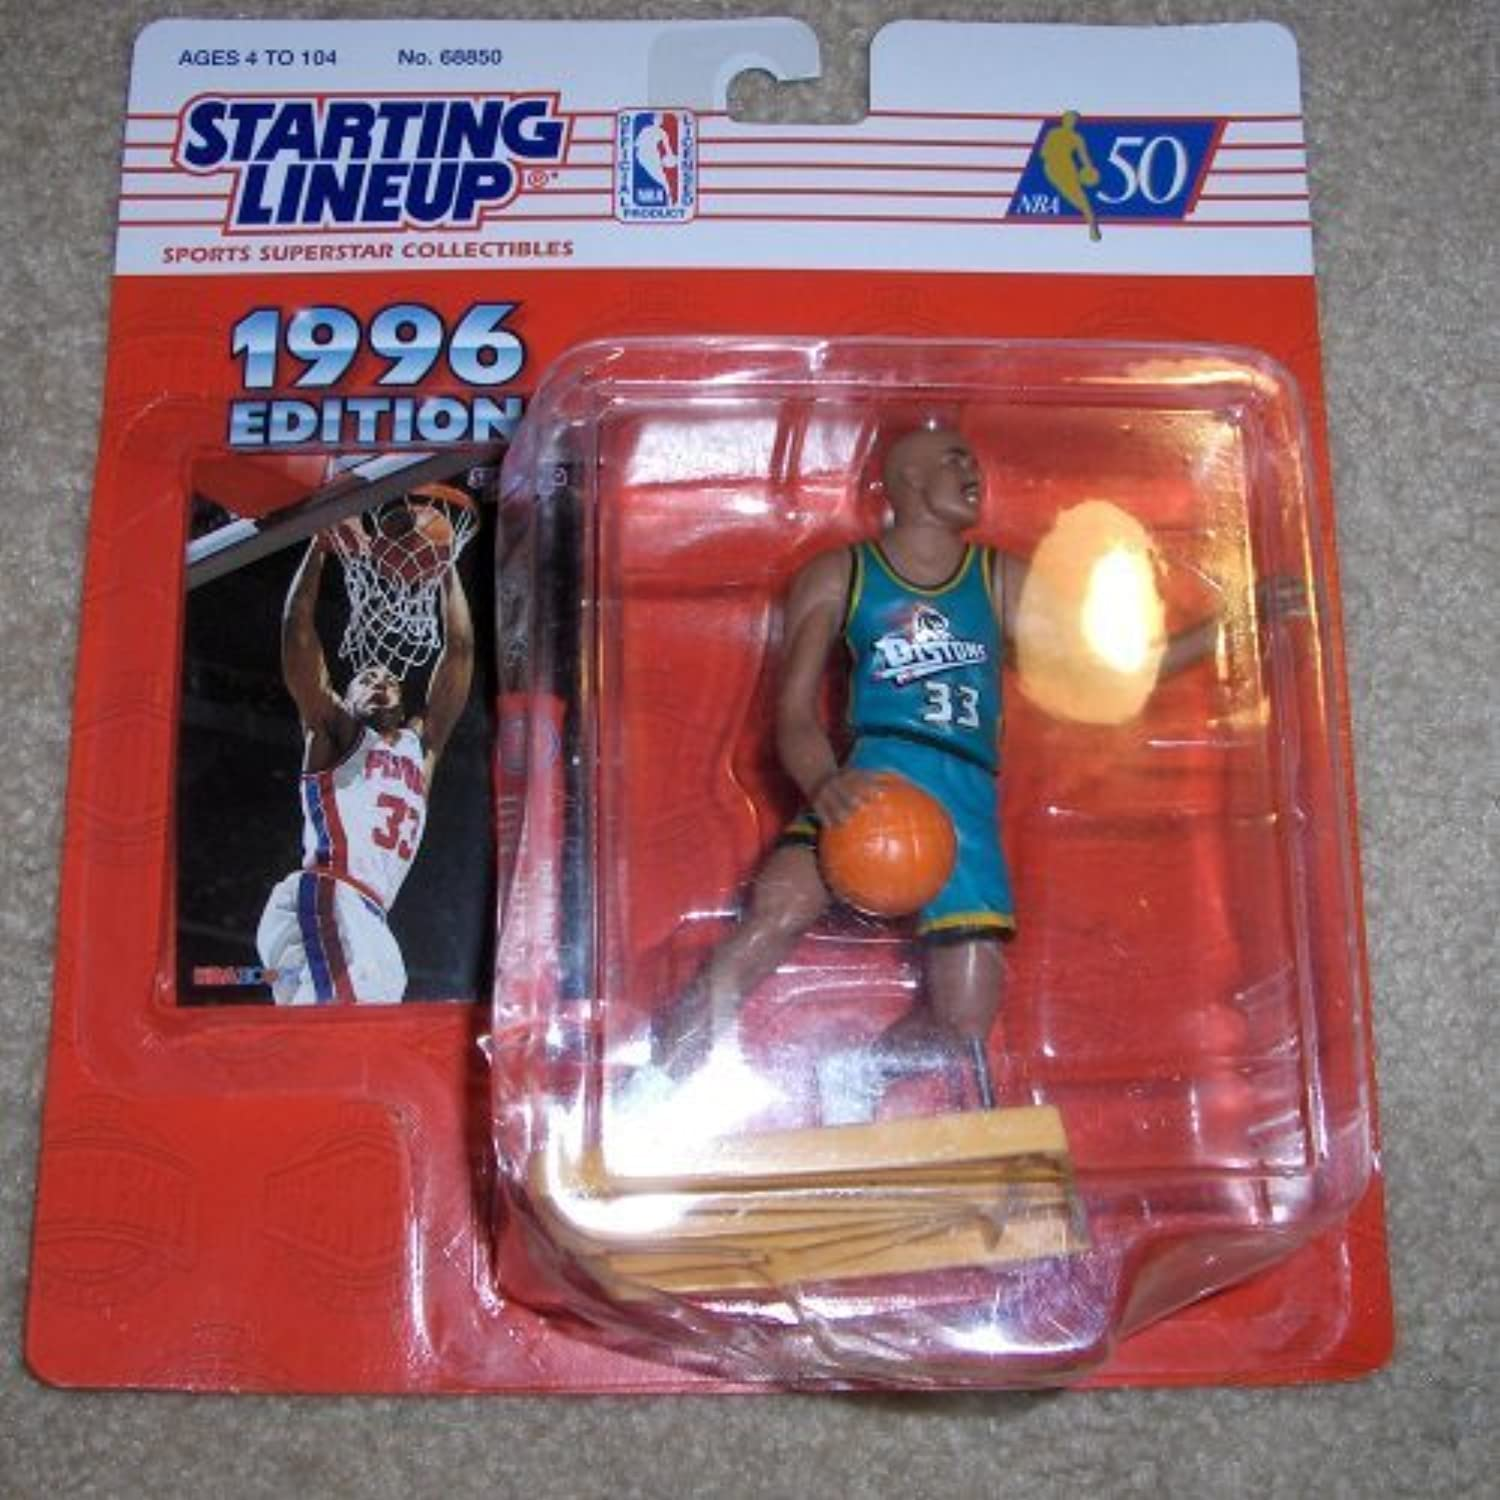 1996 Edition  Kenner  Starting Lineup  NBA 50  Grant Hill  33  Detroit Pistons  (Now Phoenix Suns)  Vintage Sports Figure  w  Trading Card  Limited Edition  Collectible by Kenner